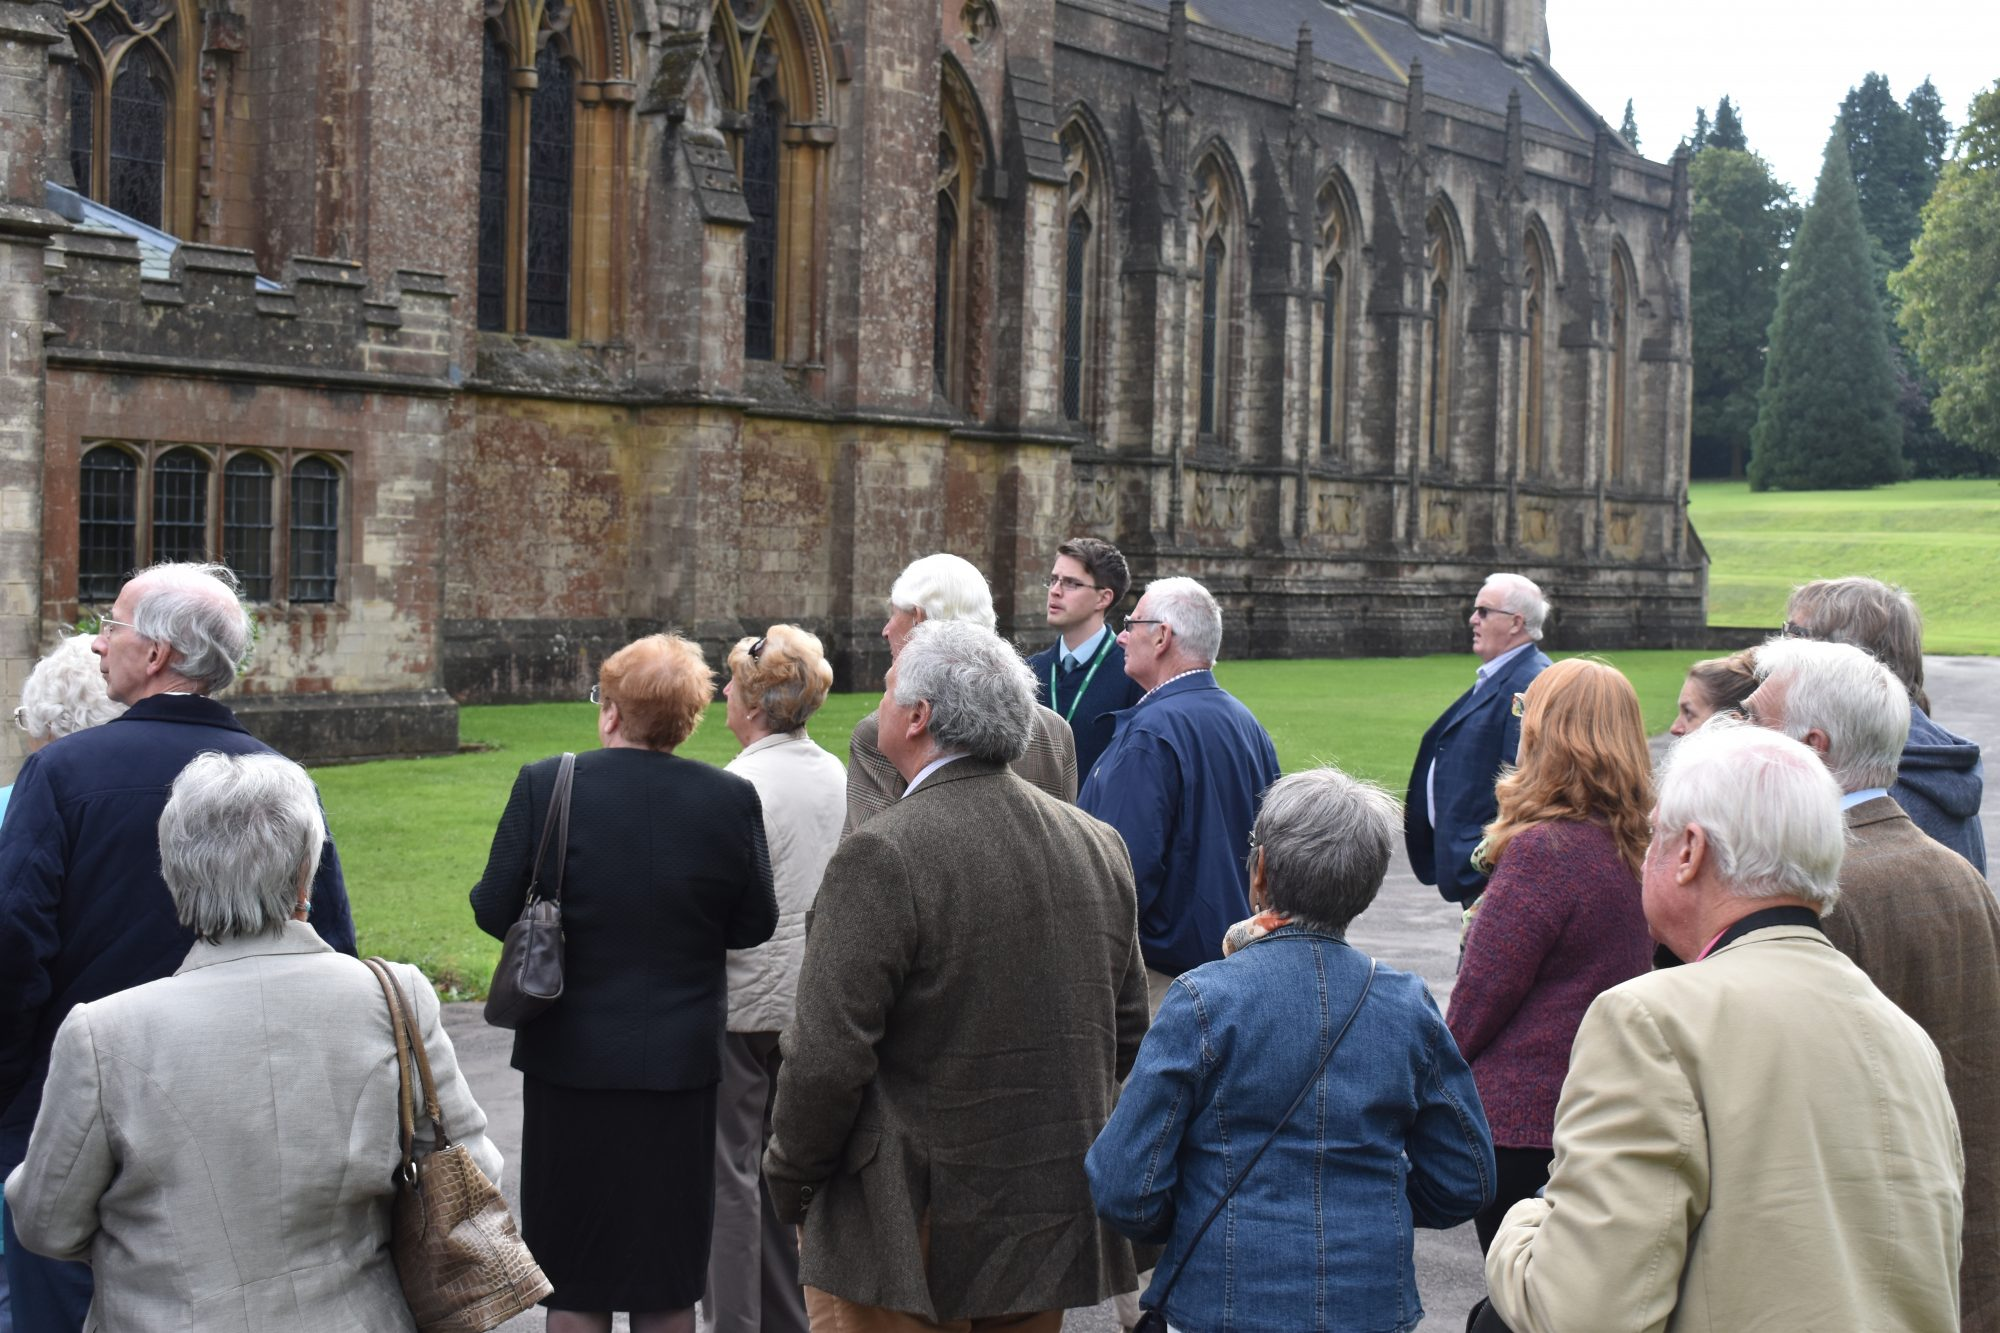 Library events, visitors to the abbey